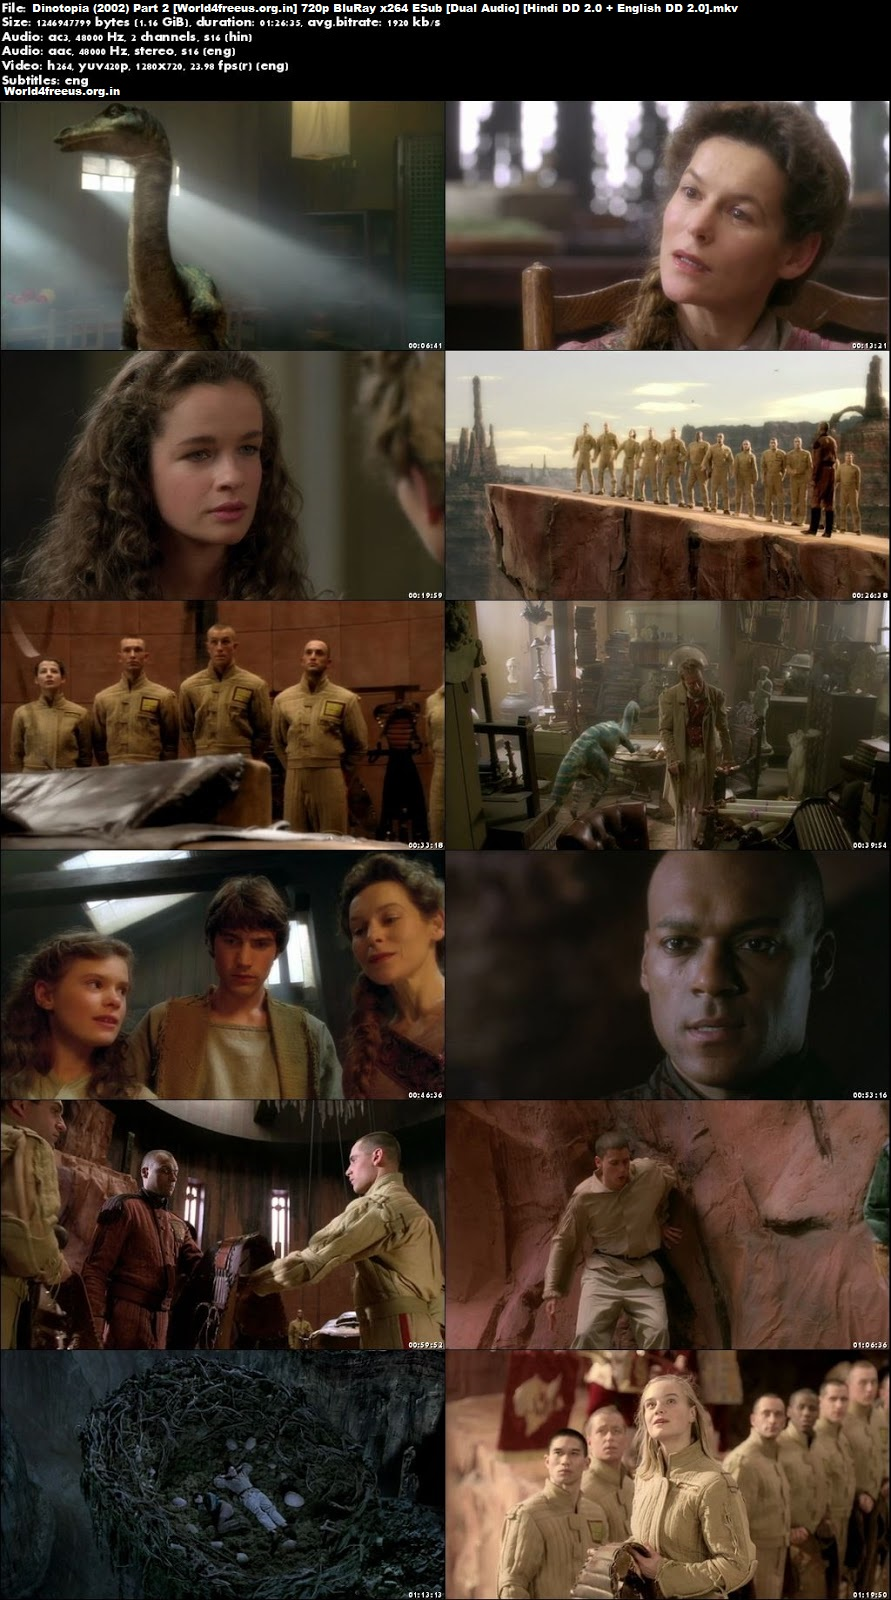 Dinotopia Part 2 2002 BRRip 720p Dual Audio In Hindi English ESub